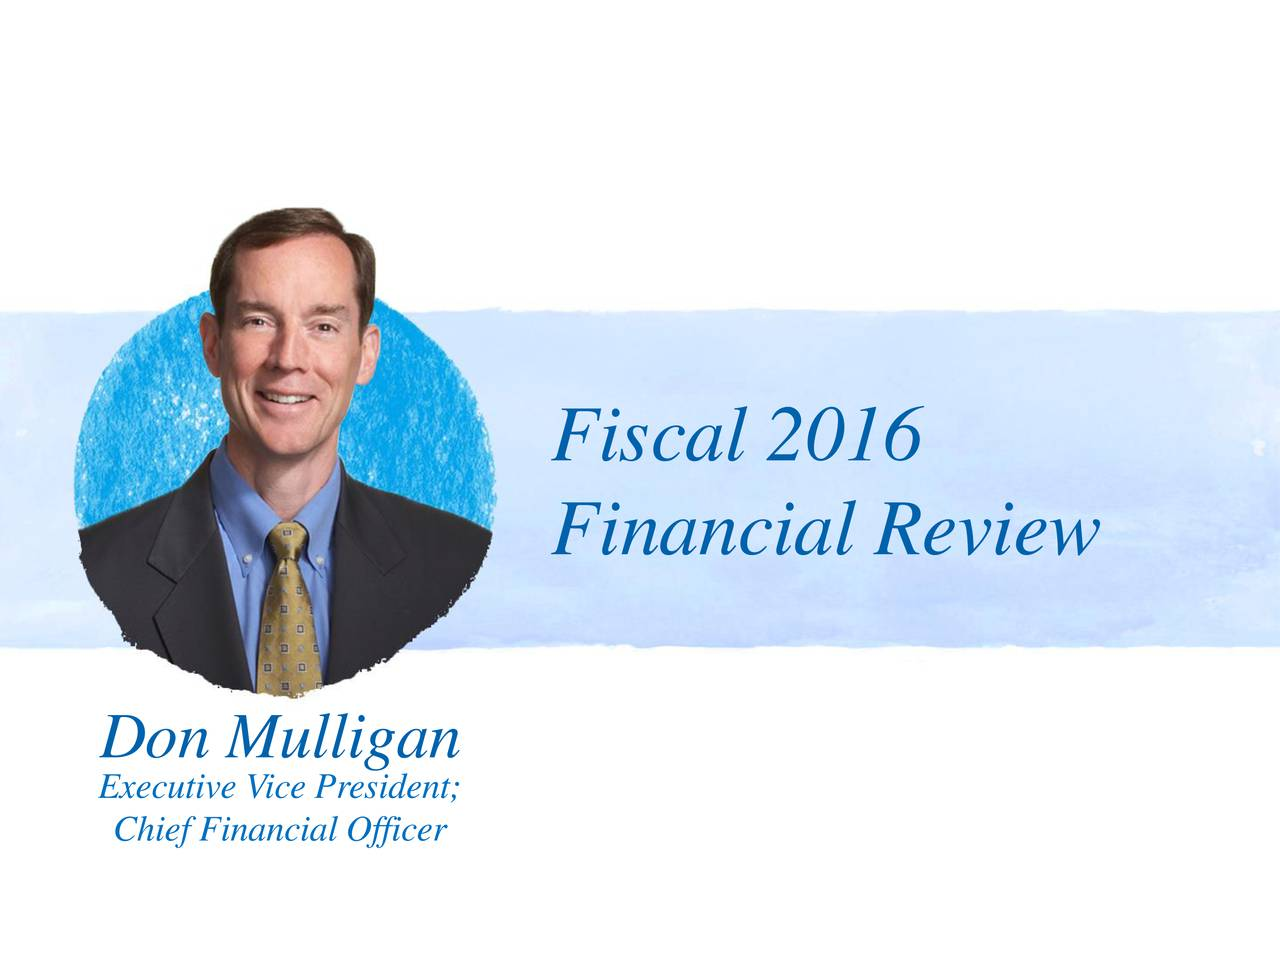 Financial Review Executive Vice President; Chief Financial Officer